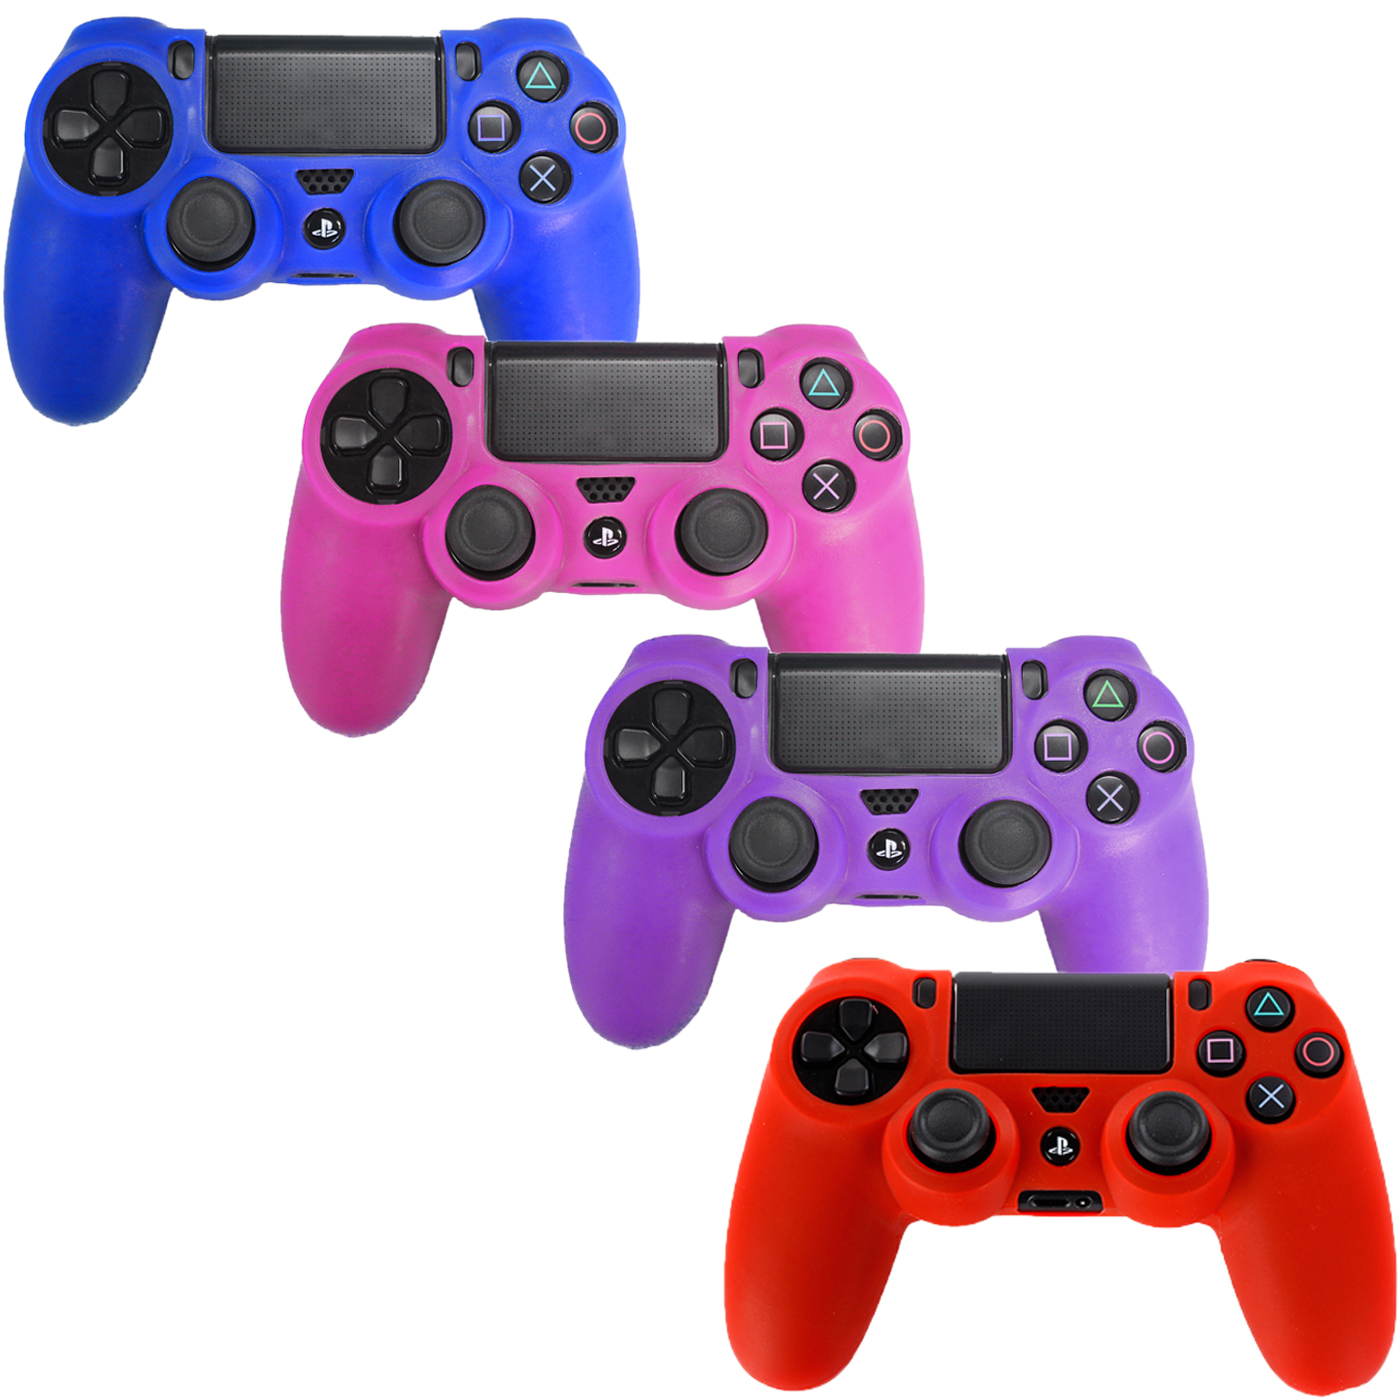 HDE PS4 Controller Skin 4 Pack Combo Silicone Rubber Protective Grip for Sony PlayStation 4 Wireless Dualshock Game Controllers (Blue, Red, Purple, Pink)